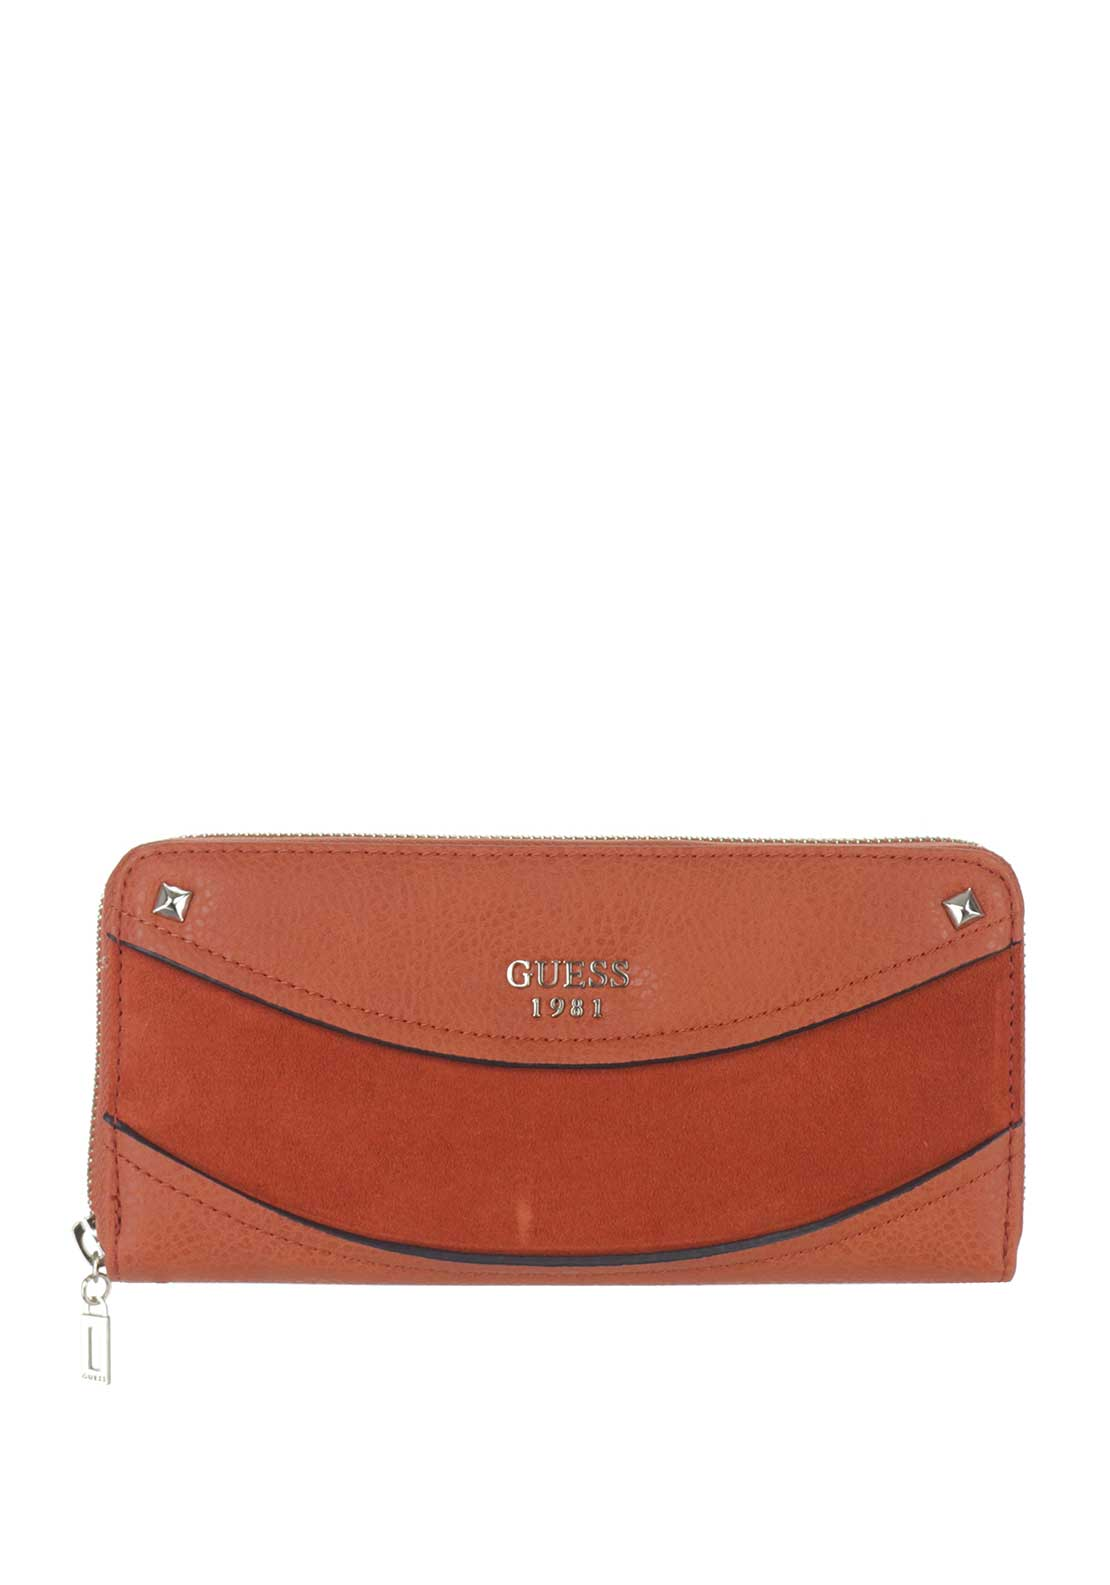 Guess Solene SLG Suede Insert Zip Around Purse, Spice